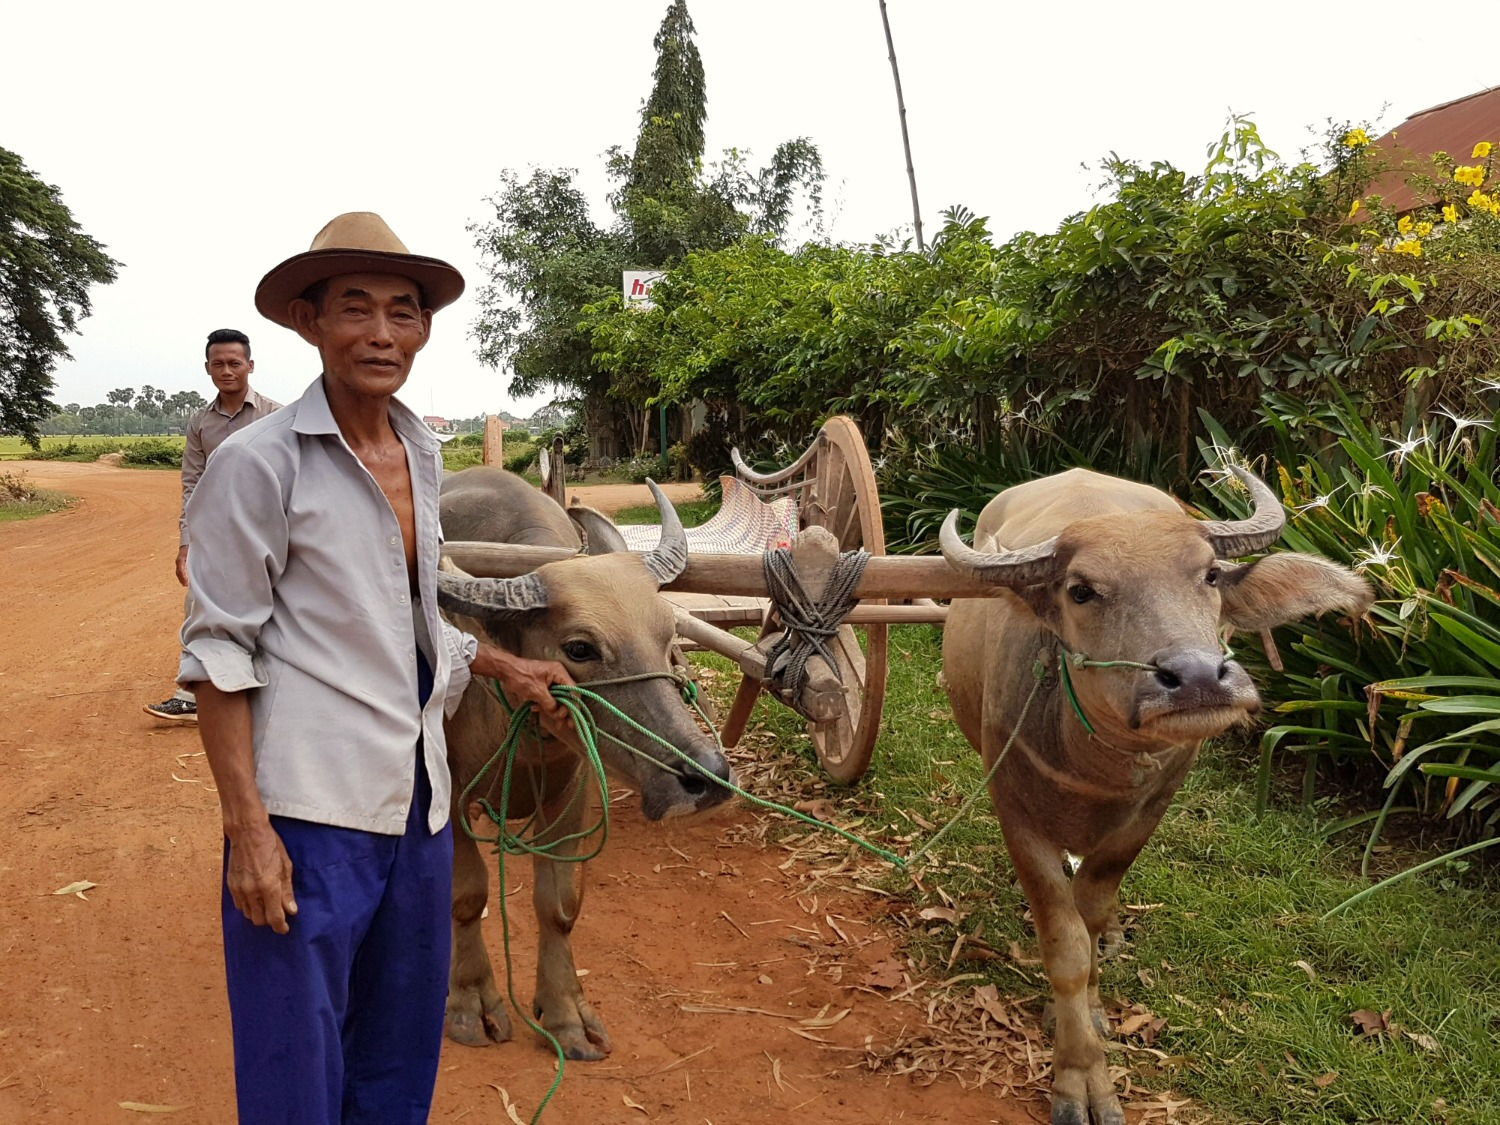 An ox cart ride in the countryside near Siem Reap, a man leads two water buffalo - 12 reasons to visit Cambodia with kids